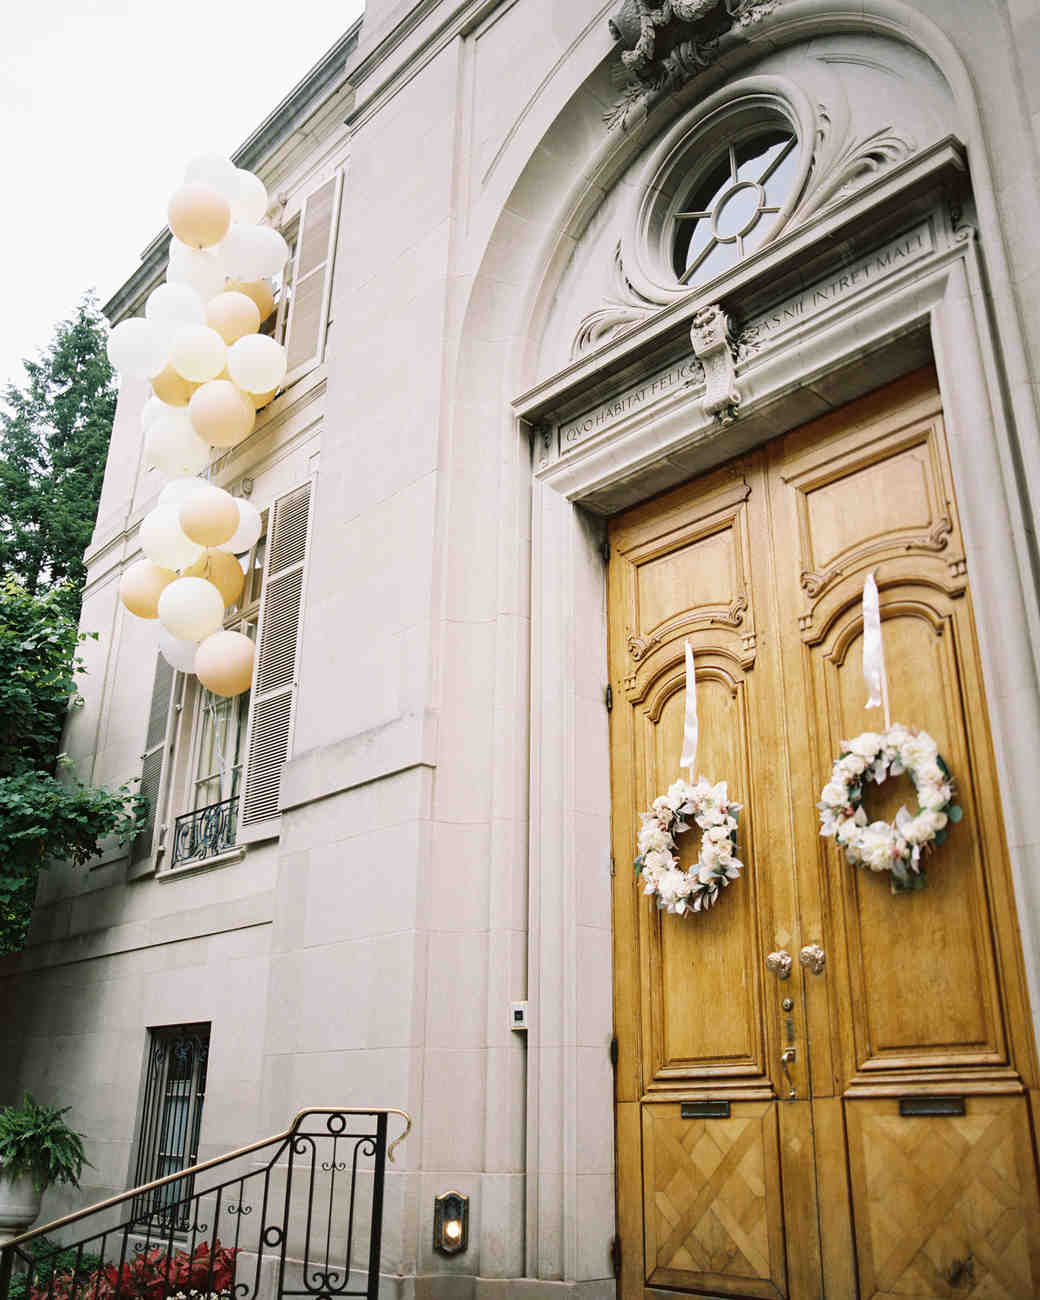 elizabeth-cody-wedding-parisian-inspired-dc-wreaths-balloons-18-s112715.jpg